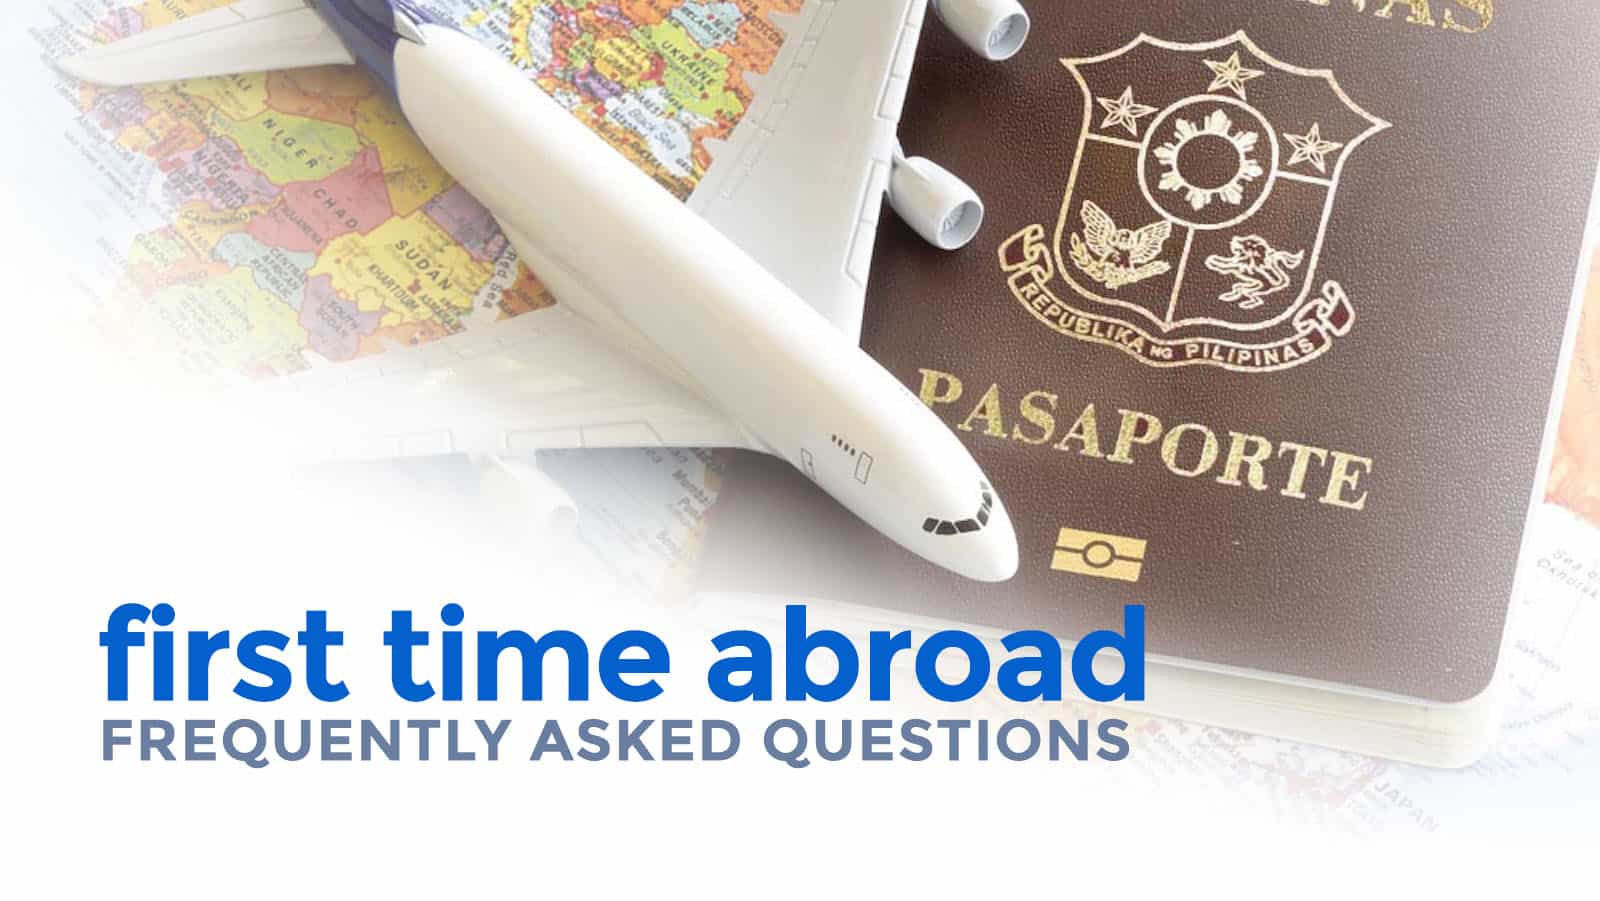 A First Timers Guide To Evaluation >> First Time Abroad Airport Tips Frequently Asked Questions 2019